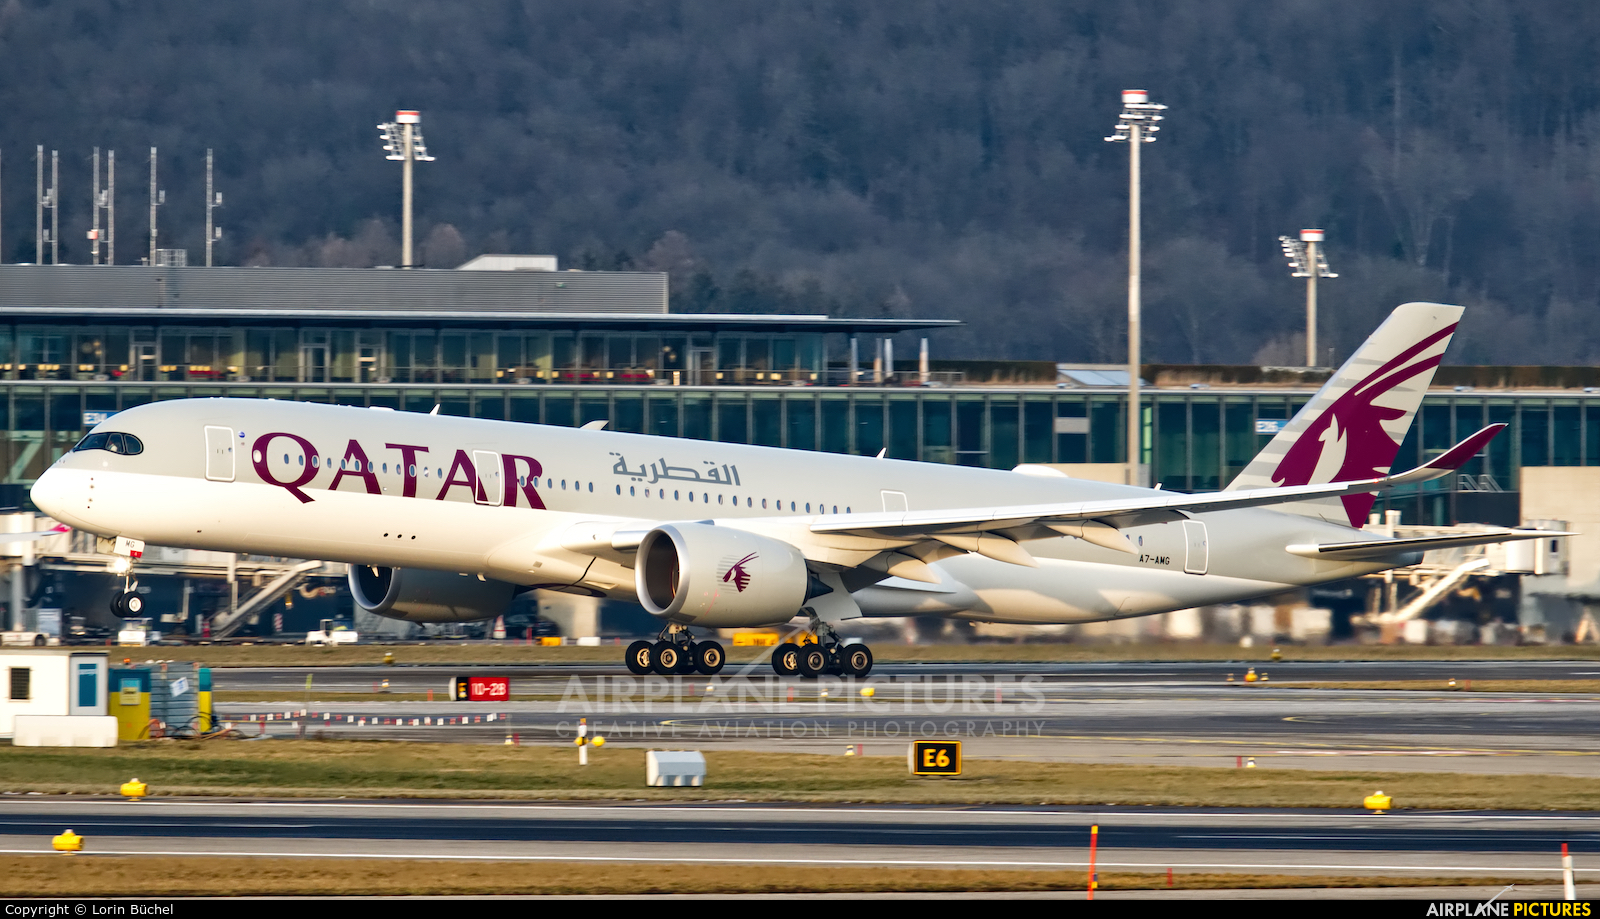 Qatar Airways A7-AMG aircraft at Zurich